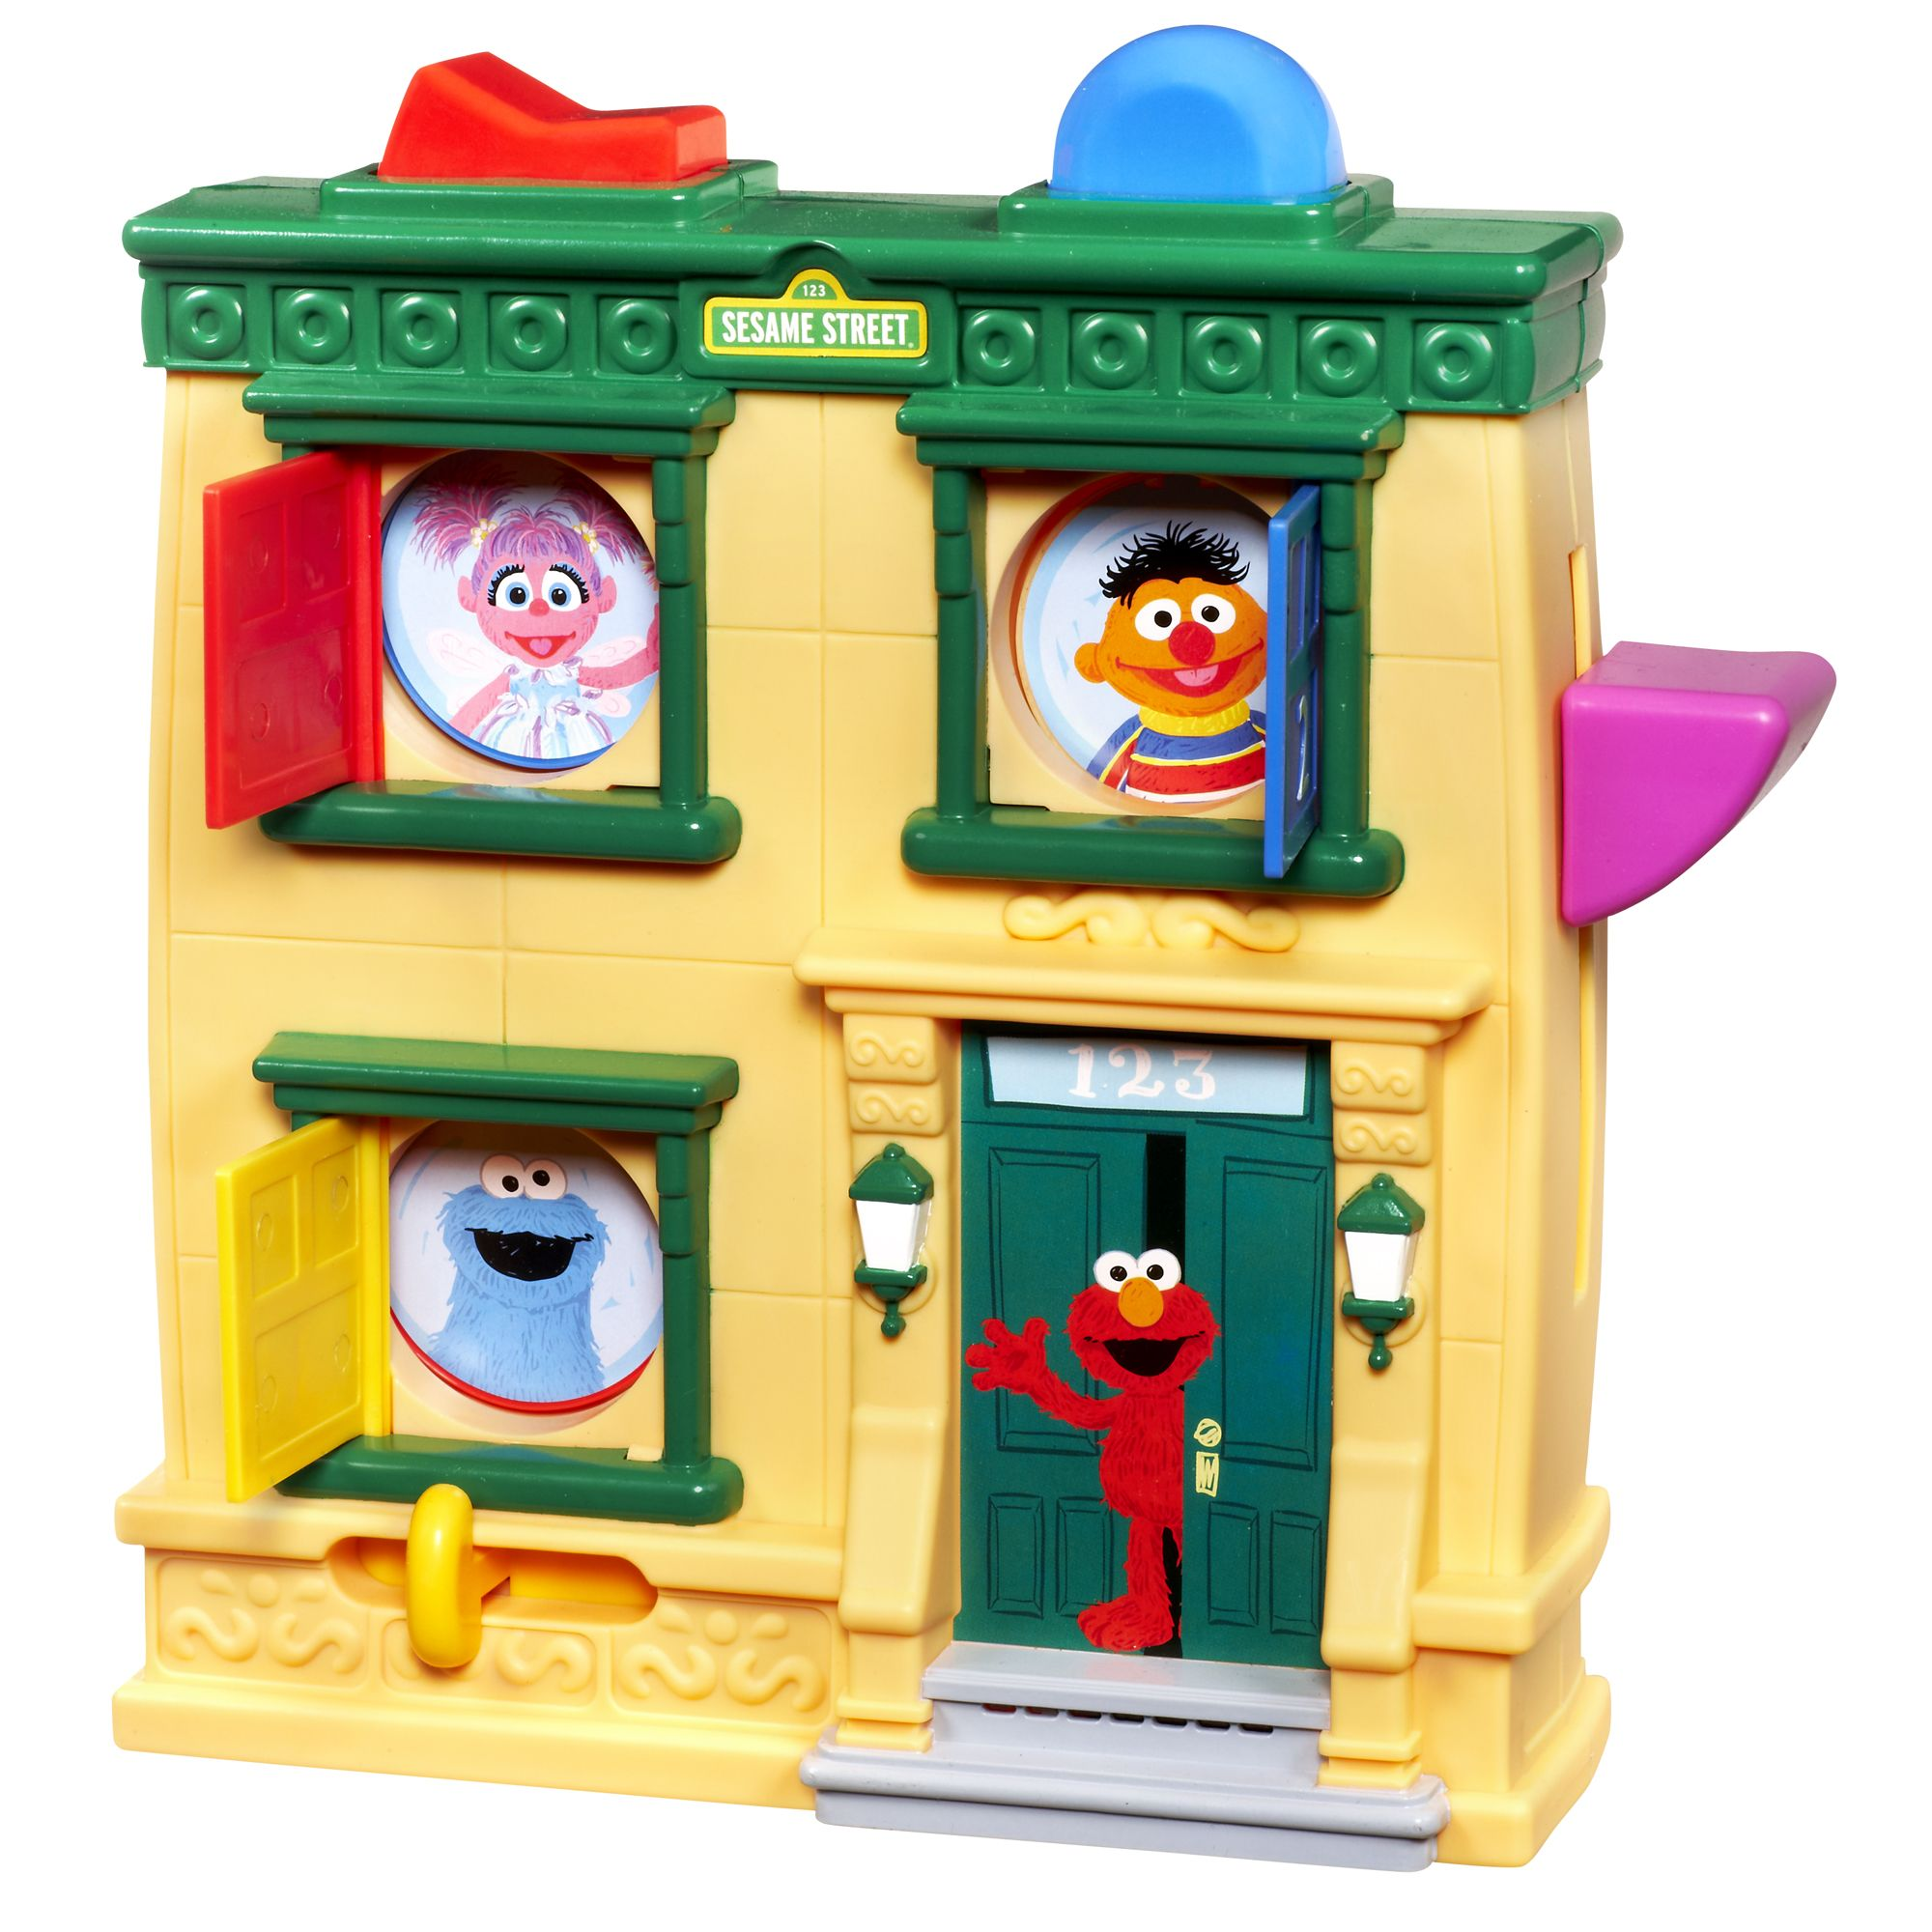 Sesame Street Playskool Hide 'N Seek Pals Playset Elmo